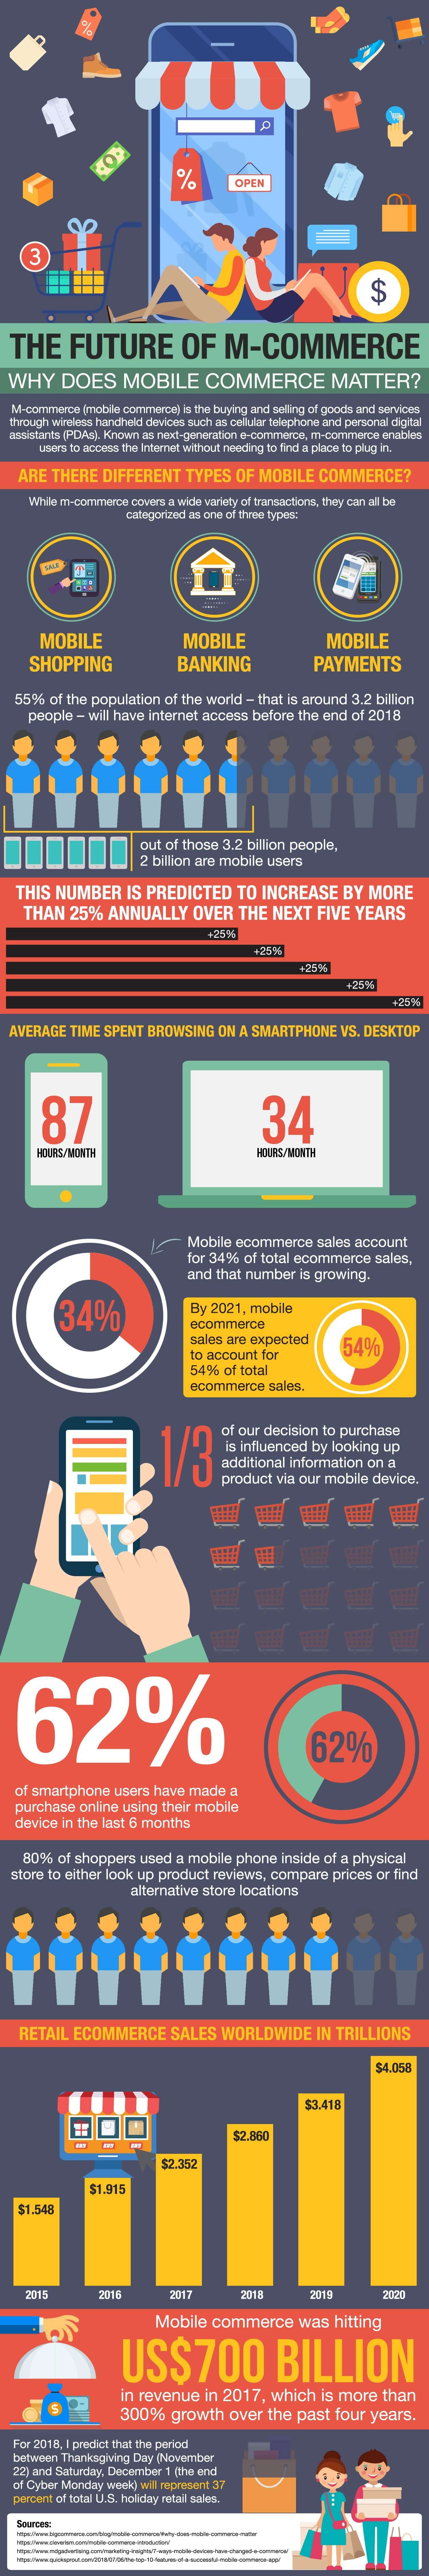 The future of mobile commerce 3